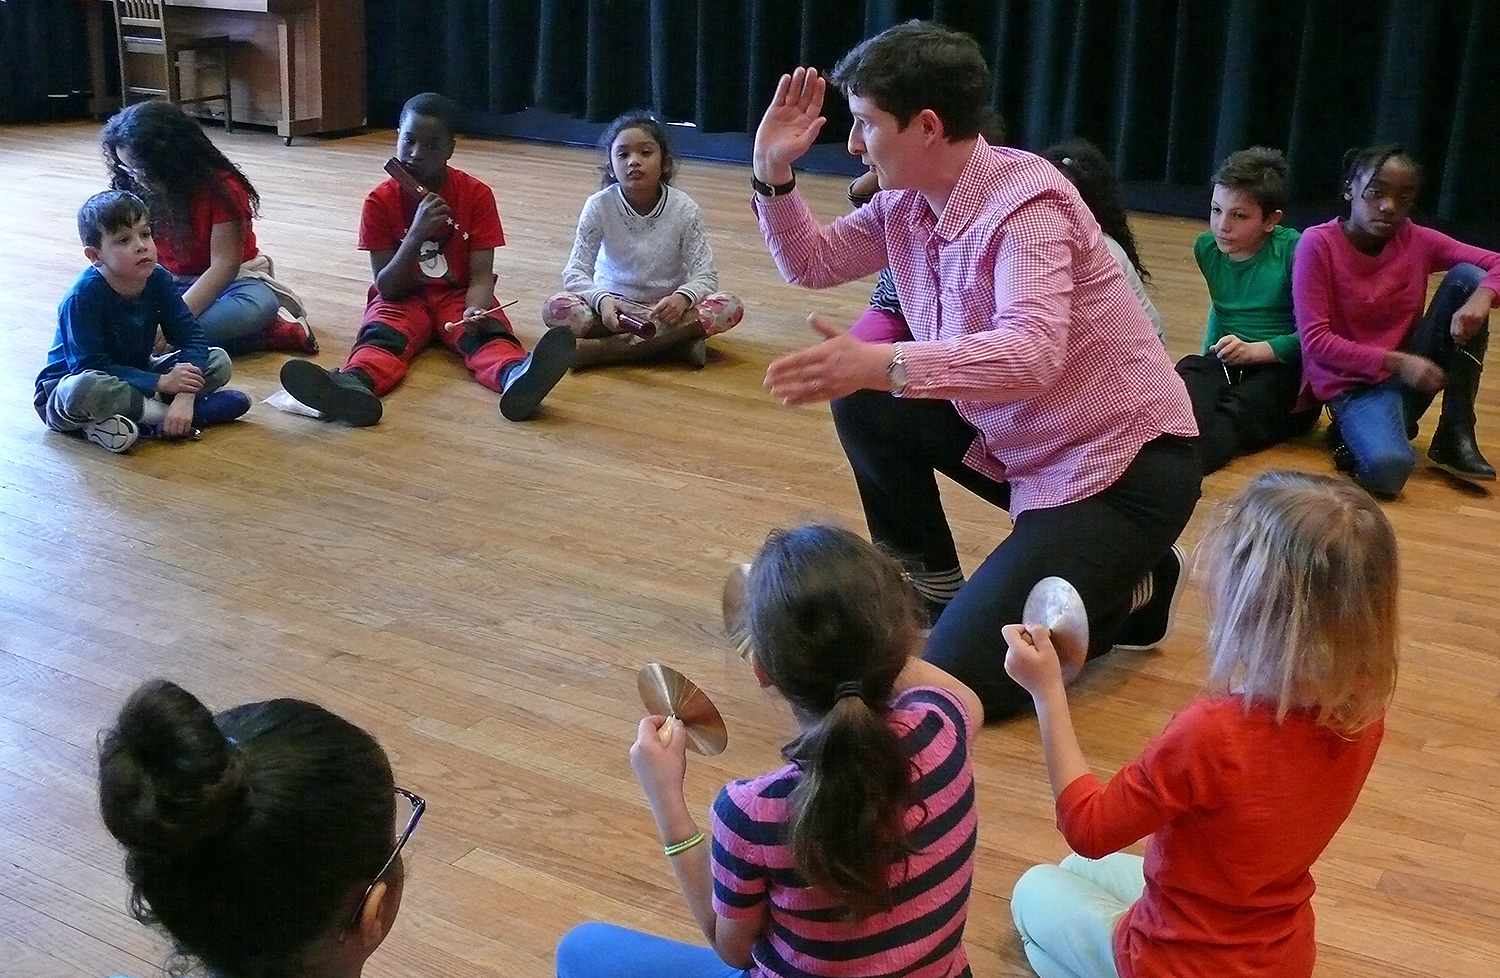 Nadya Potemkina, adjunct assistant professor of music, led a musical lesson for students of Green Street's After School program onApril 4.